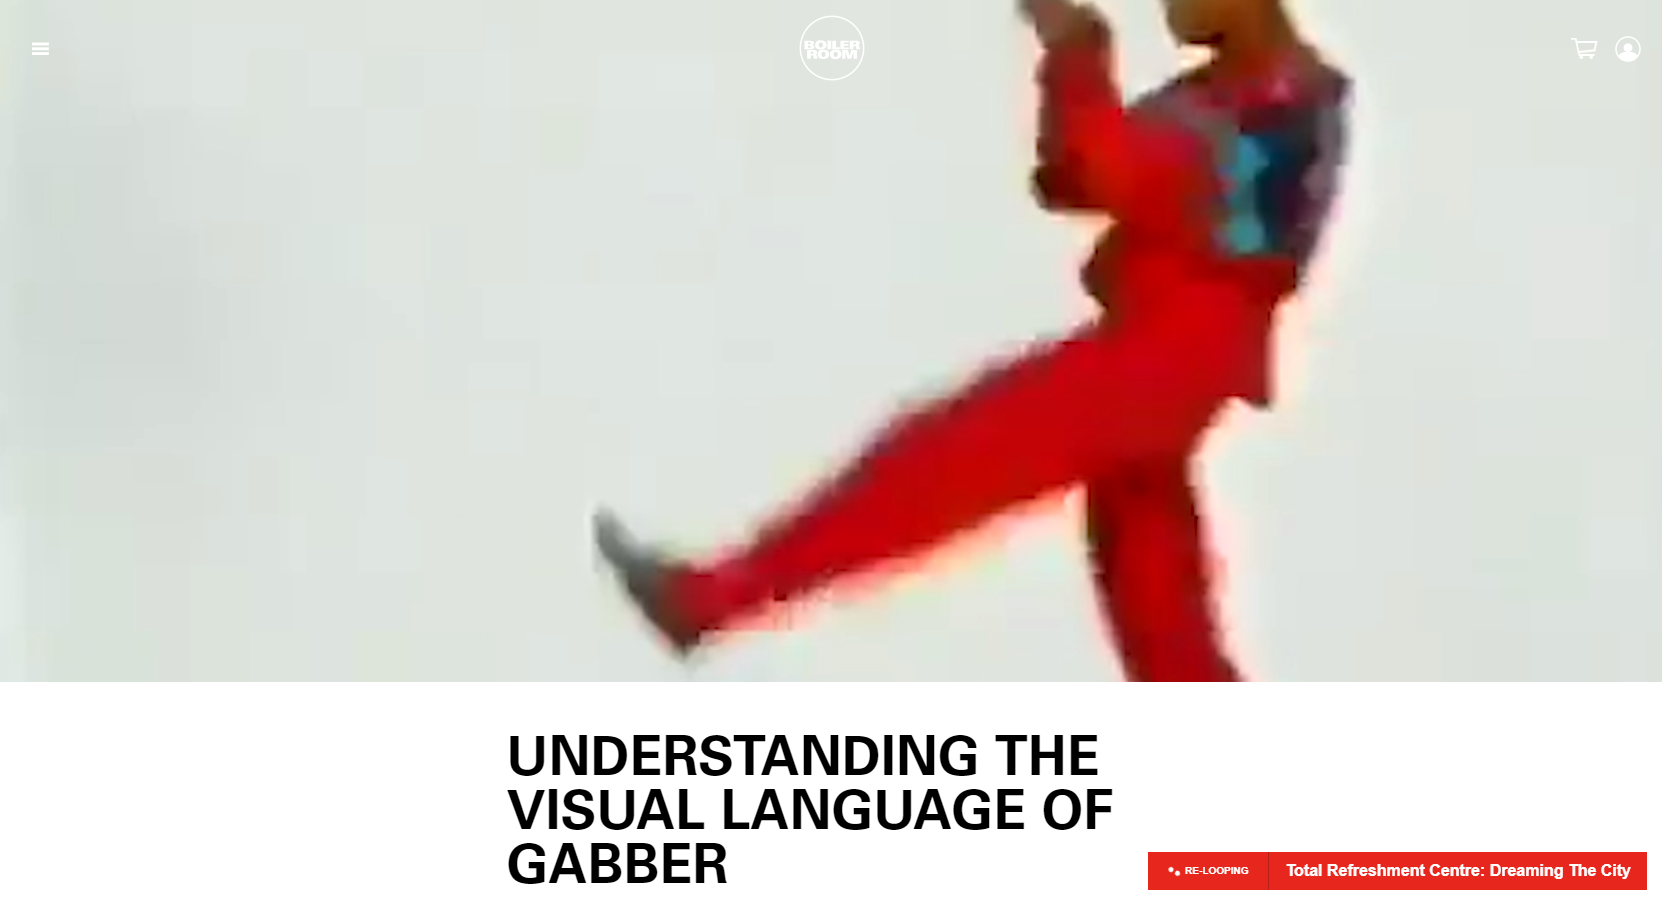 Understanding the visual language of Gabber